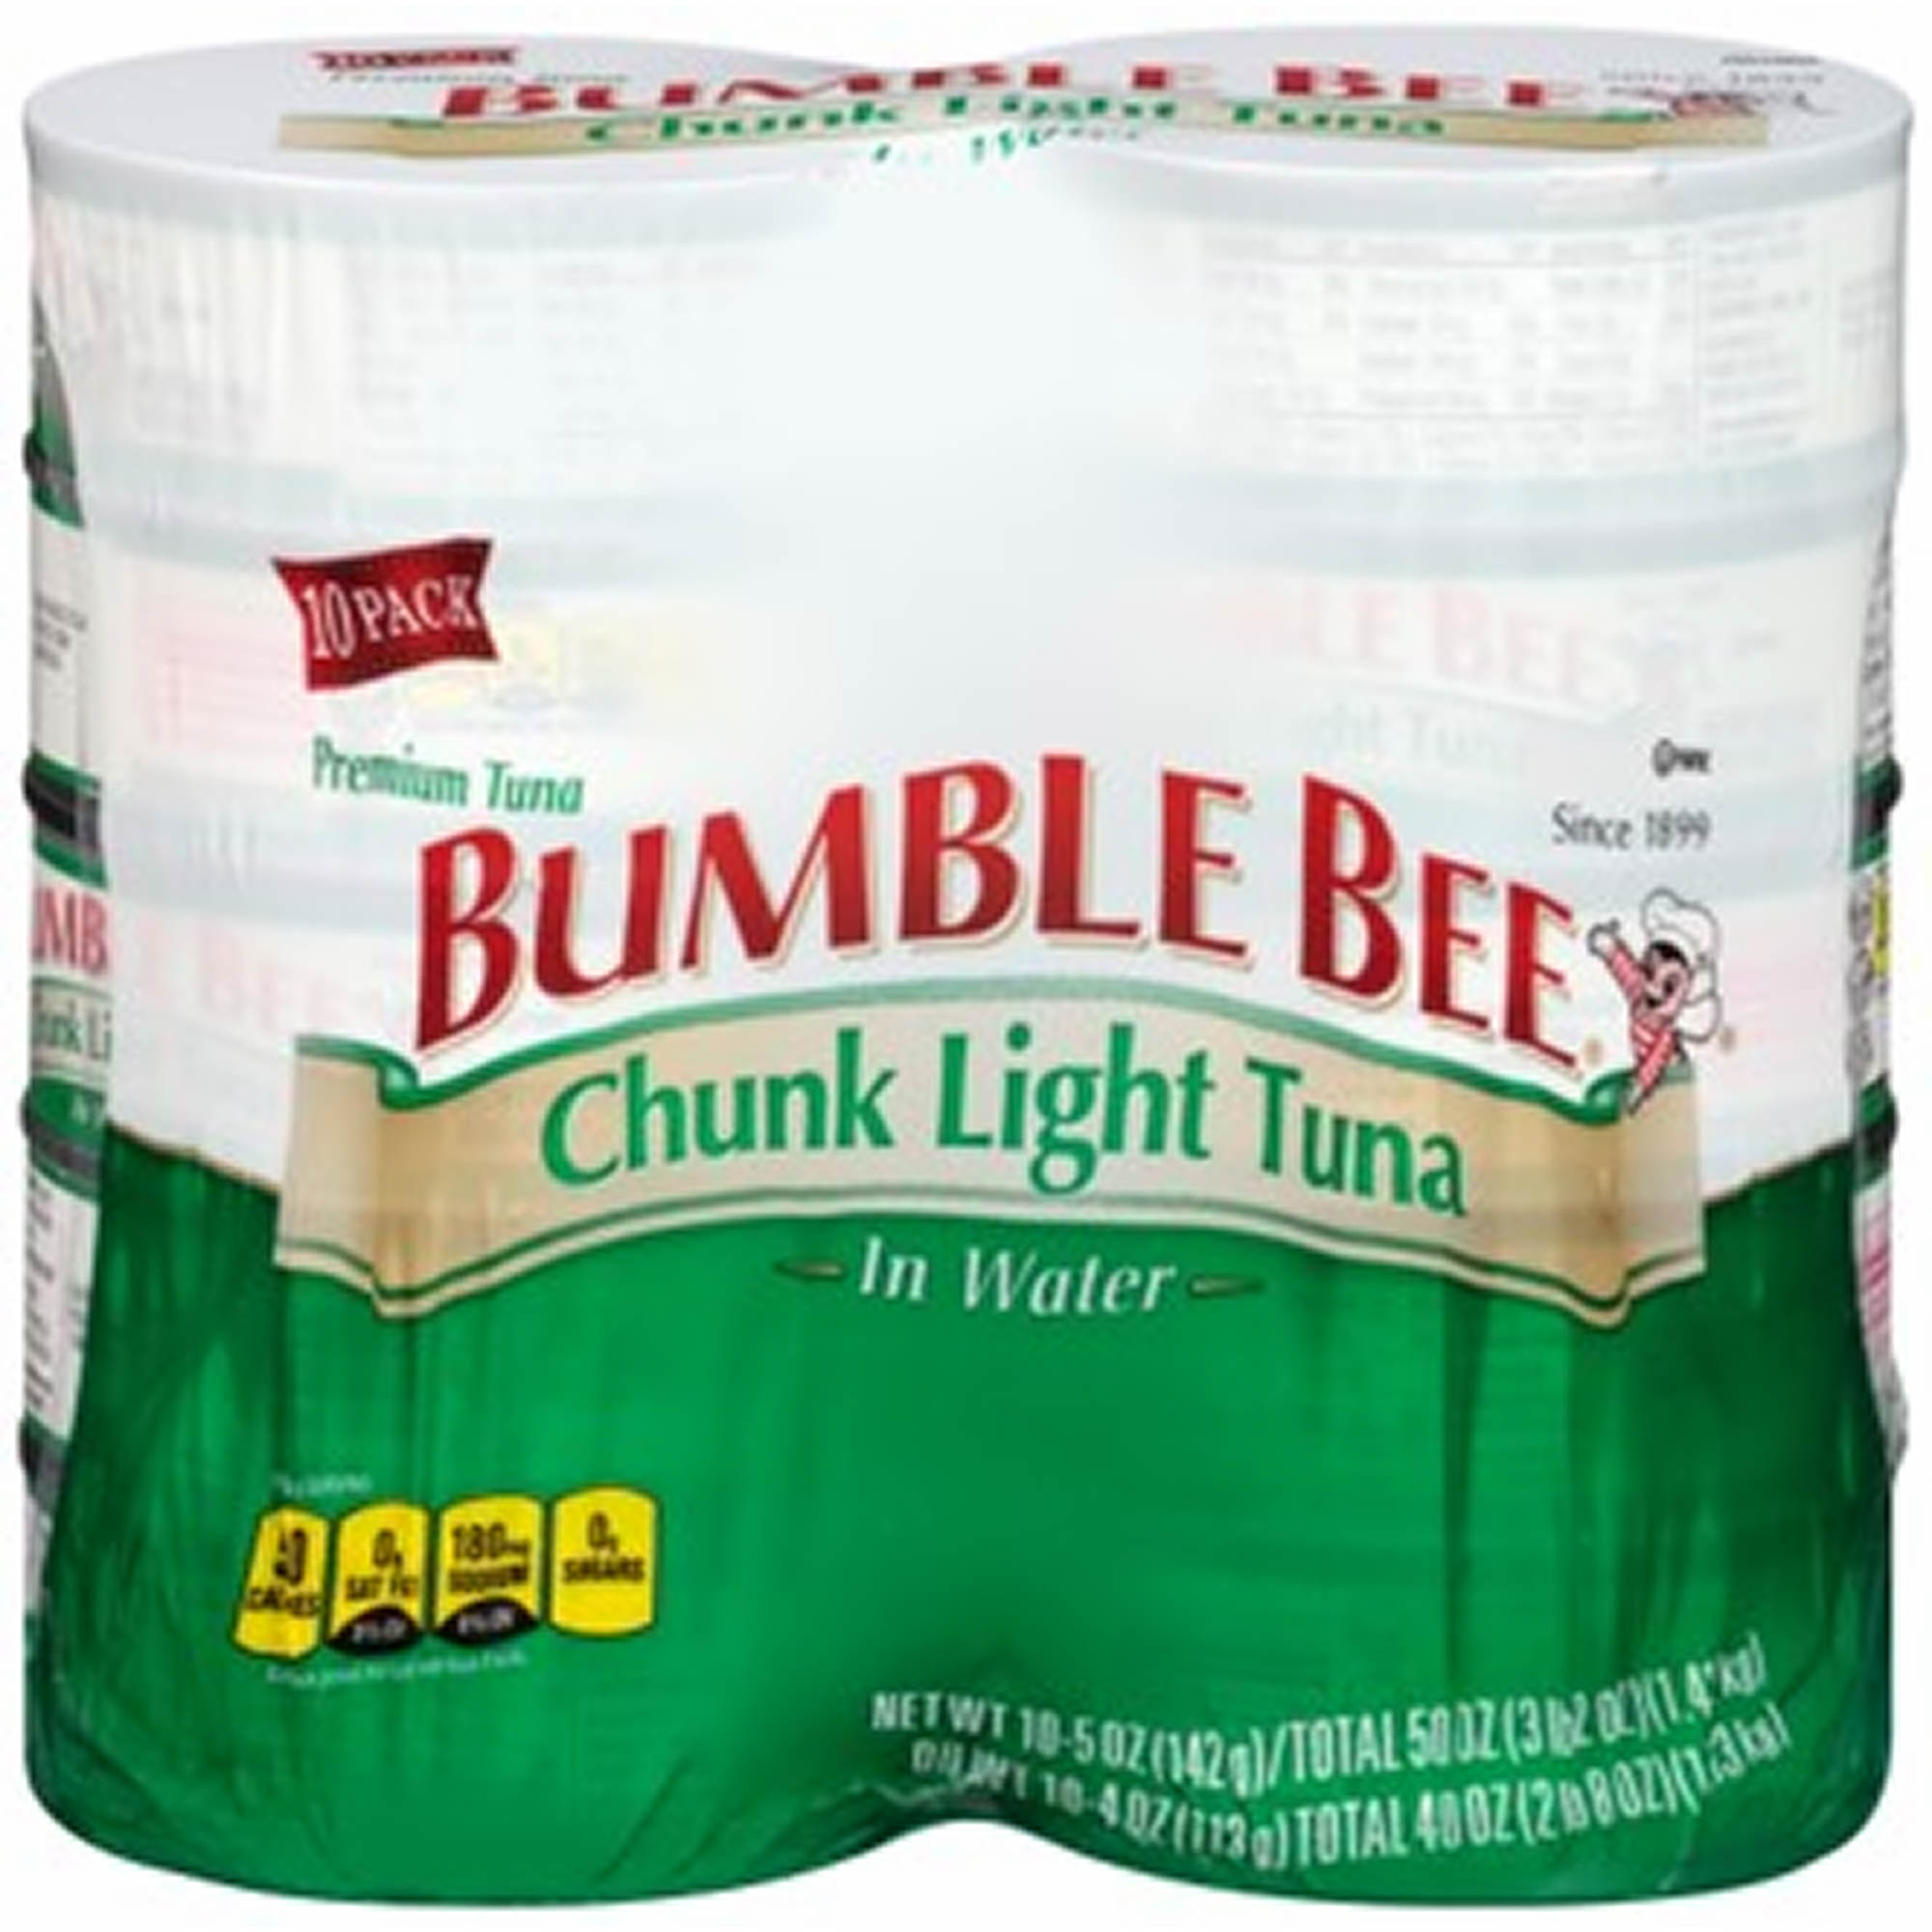 bumble bee chunk light tuna in water 10 pk 5 oz bj 39 s wholesale. Black Bedroom Furniture Sets. Home Design Ideas